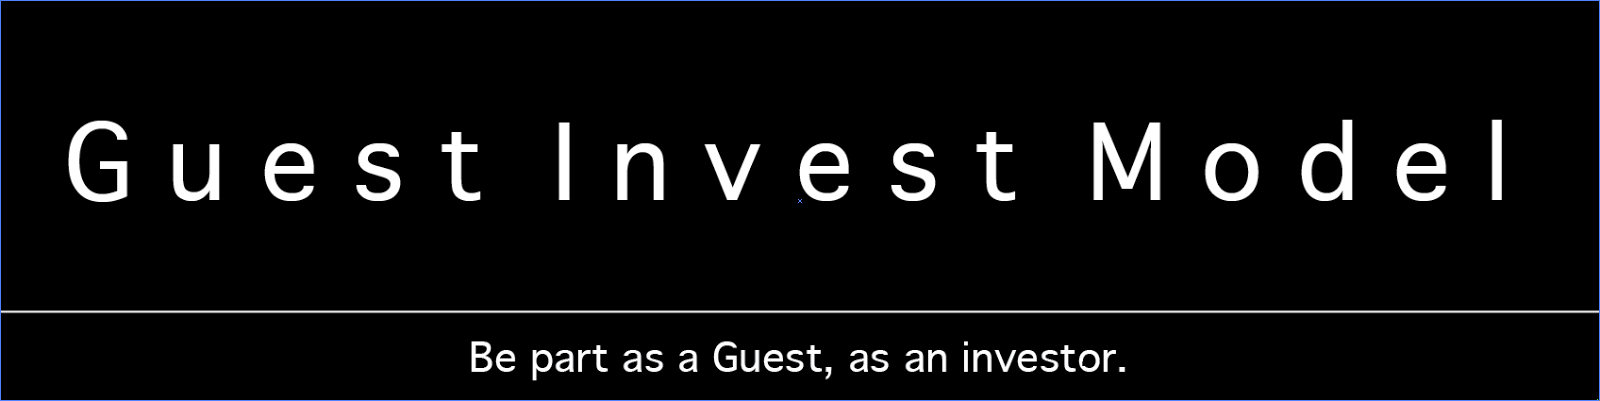 Want to invest with us? ... be a Guest Investor!